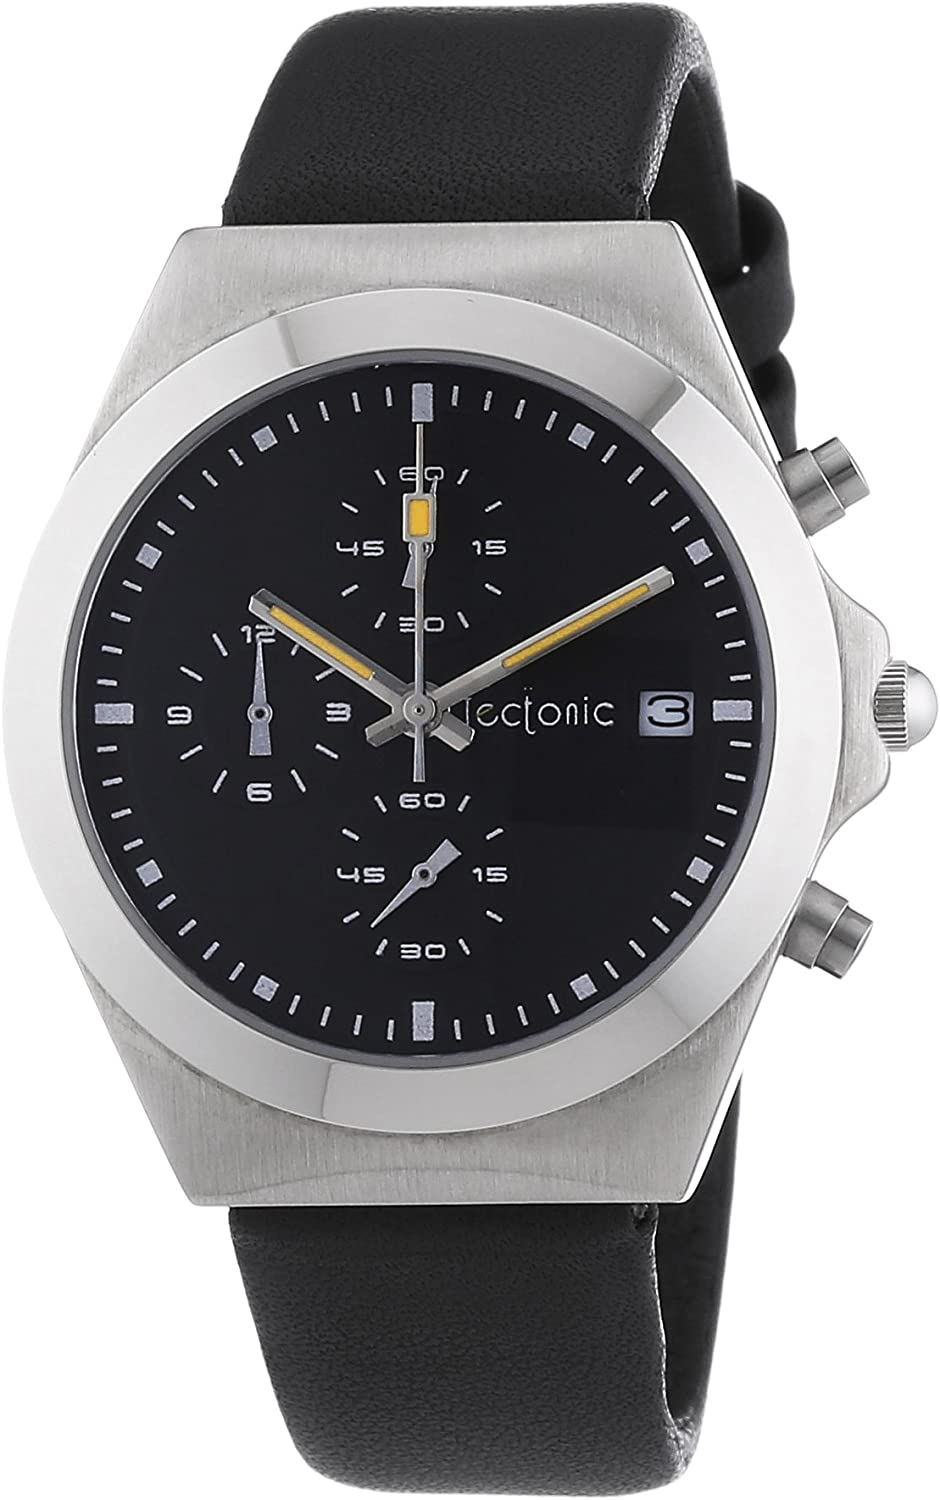 Tectonic 41-6905-44 - Reloj de cuarzo unisex, color negro